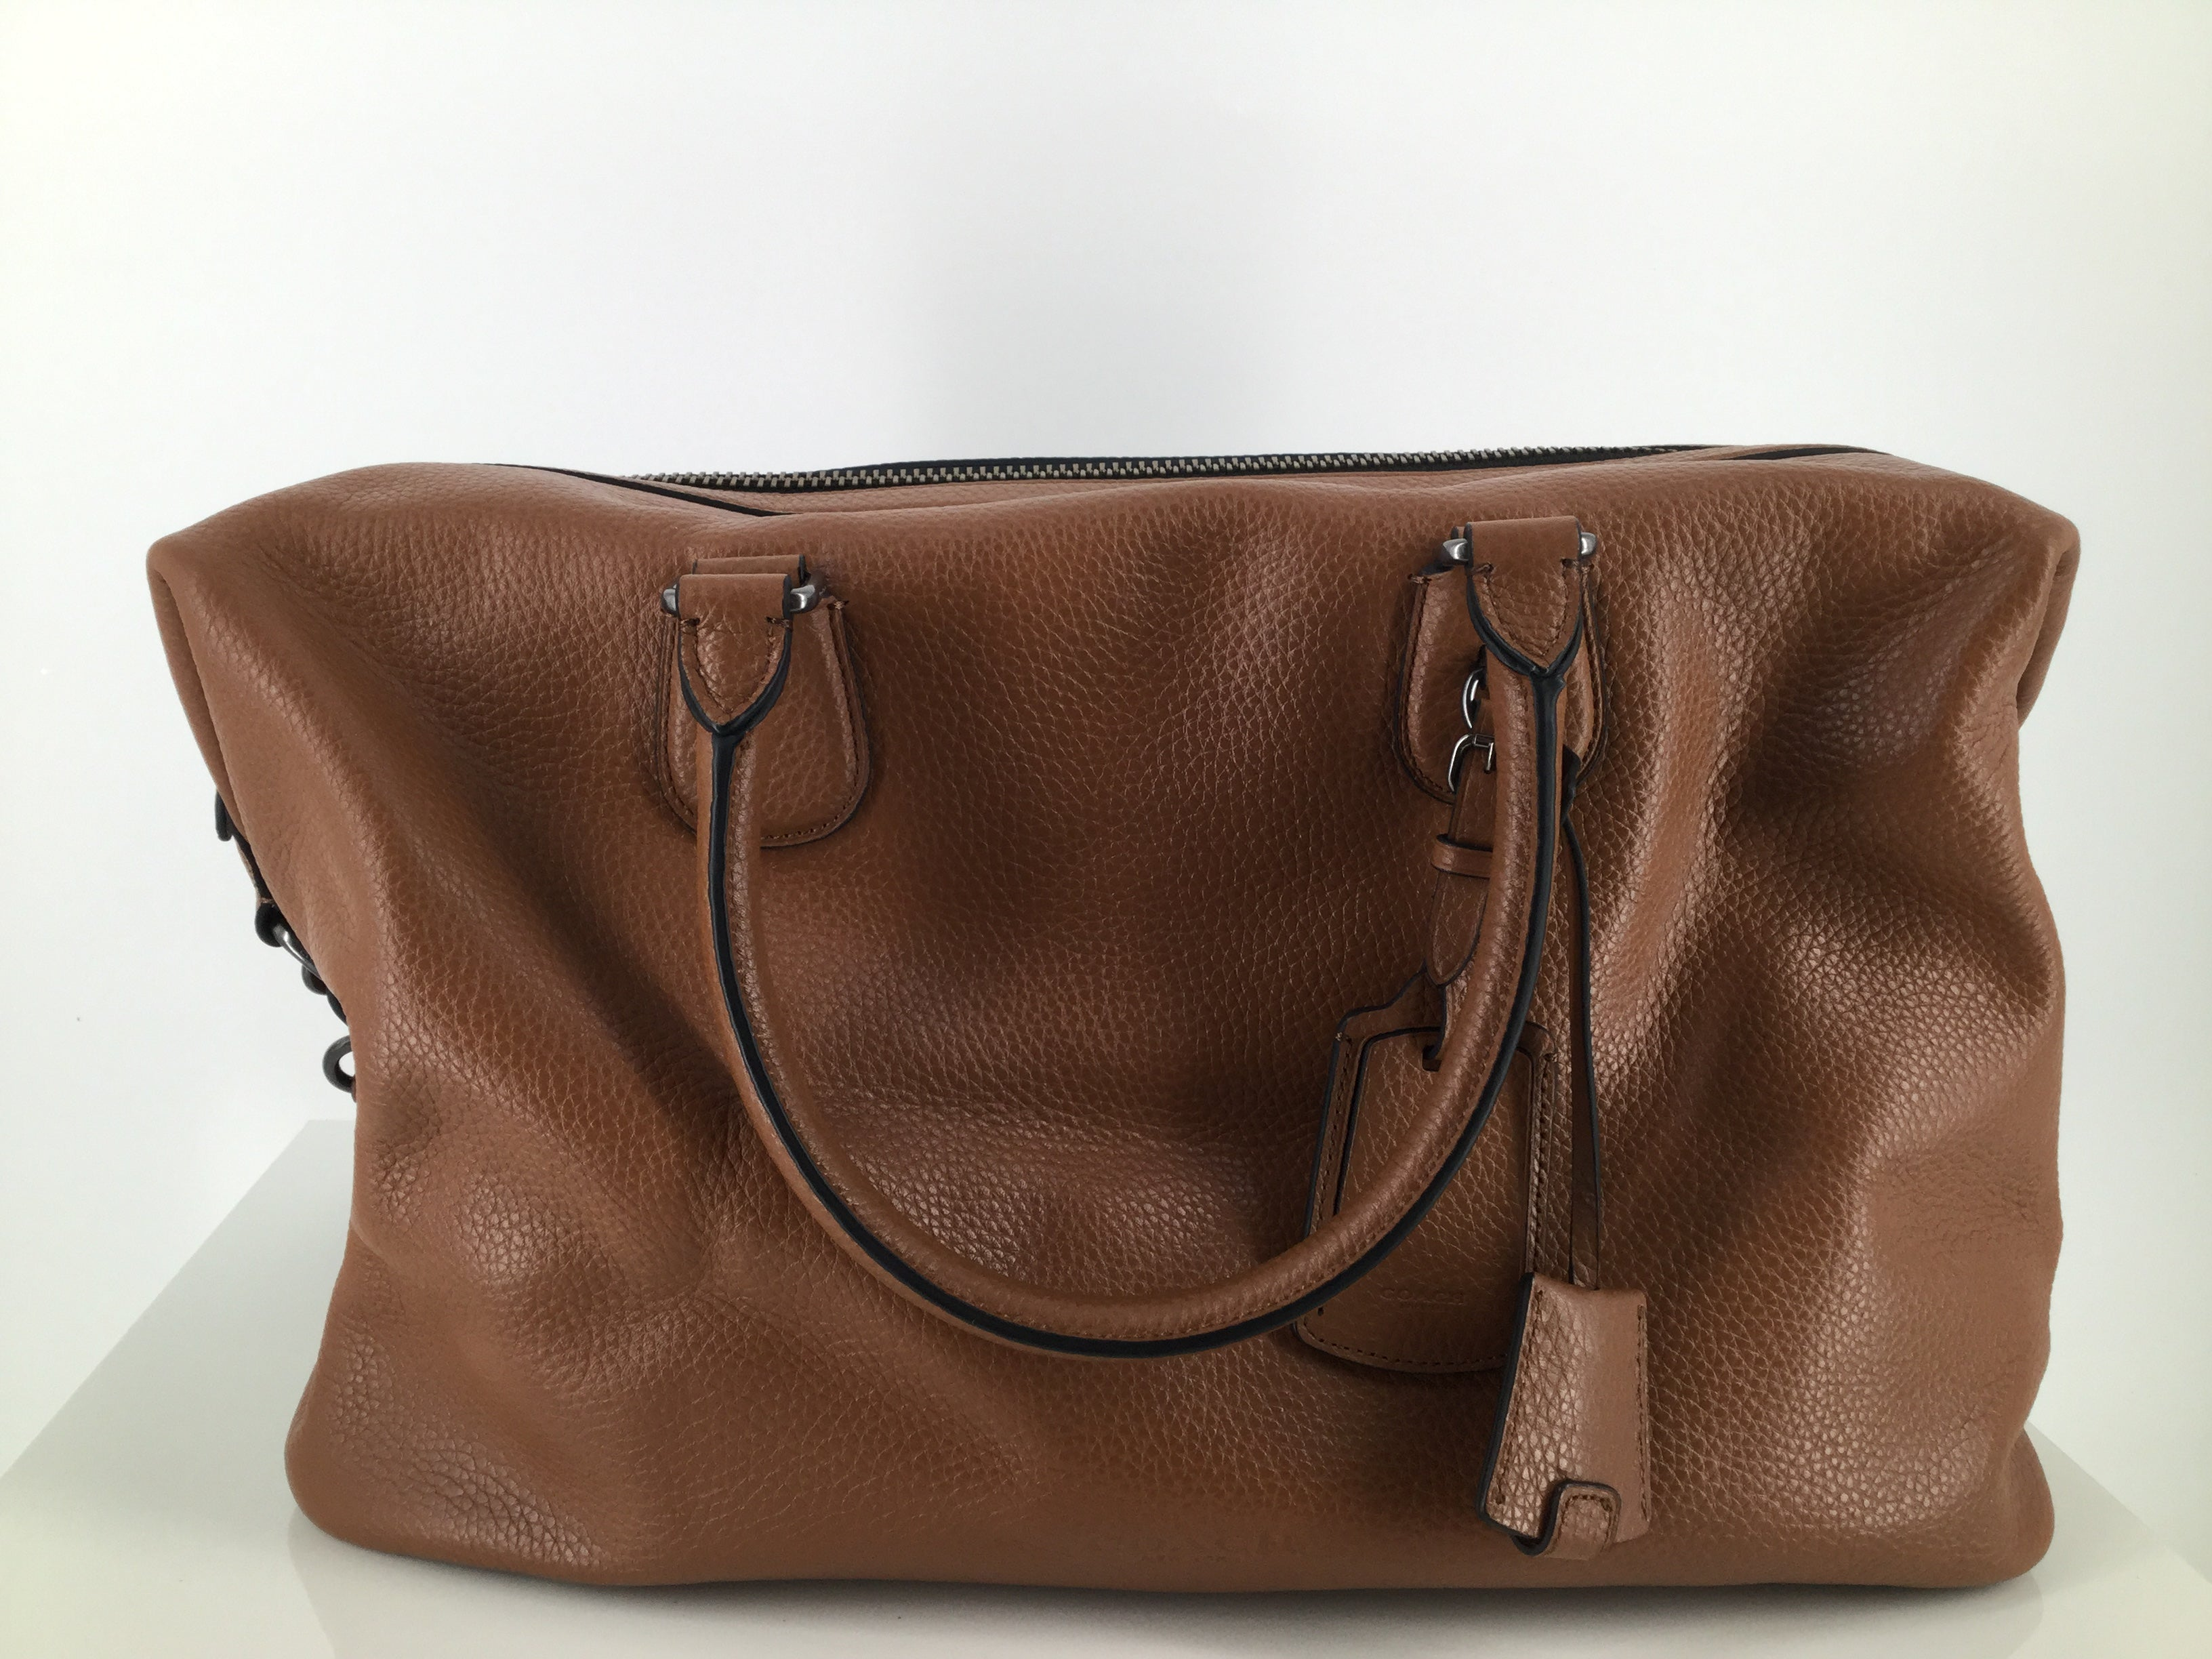 Coach Tote Size:large - THE PERFECT TRAVEL BAG!